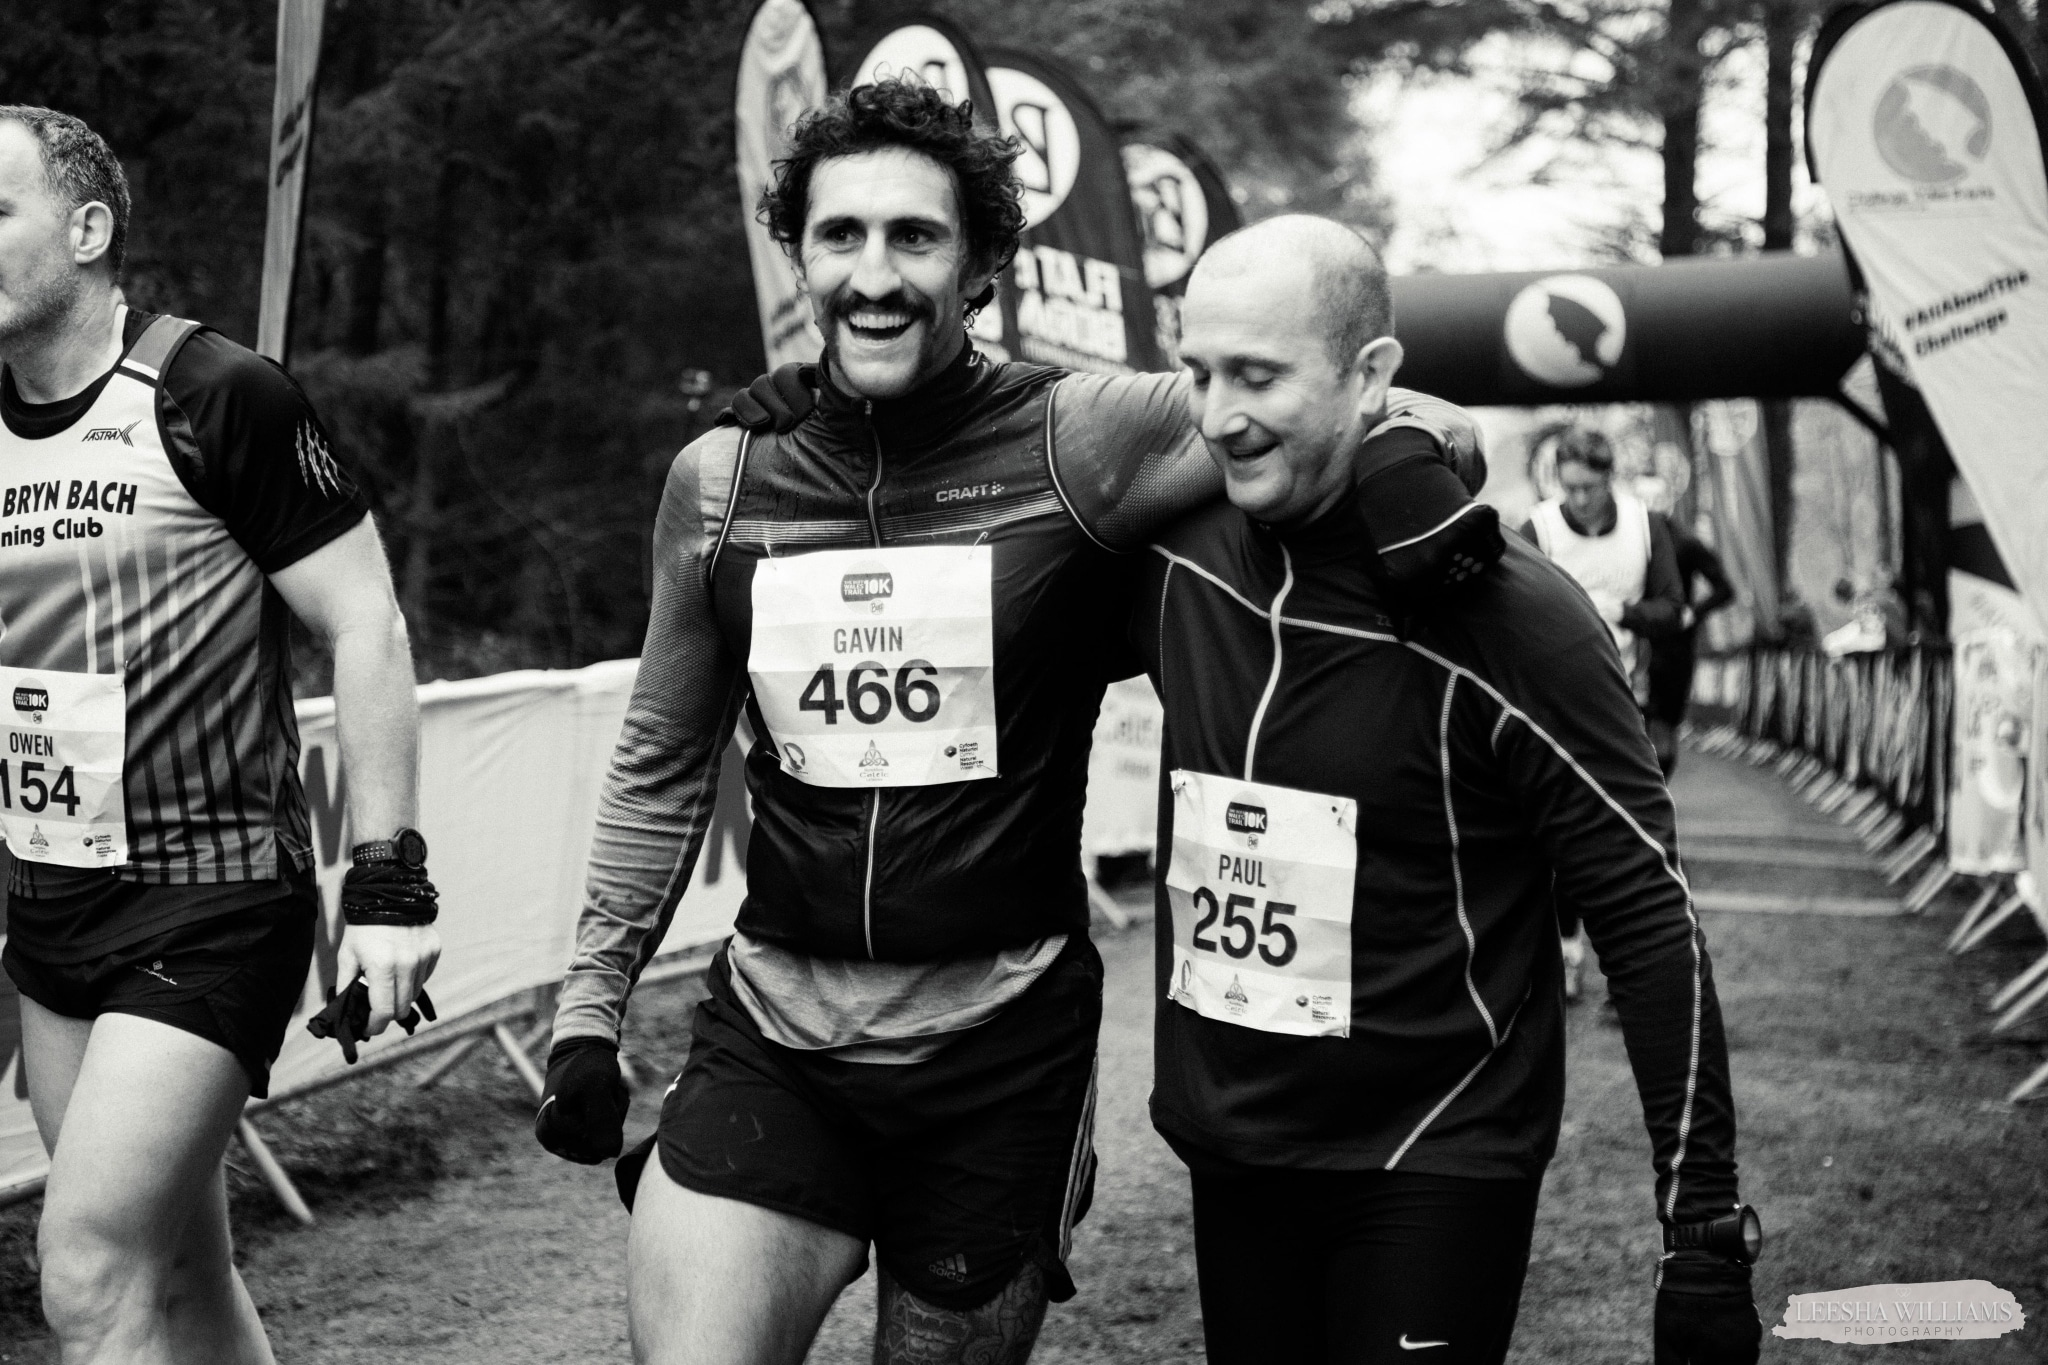 Two runners hug with big smiles after Finishing the Buff Wales 10k- What you need to know about Tough Runner UK is we produce the challenge you crave.